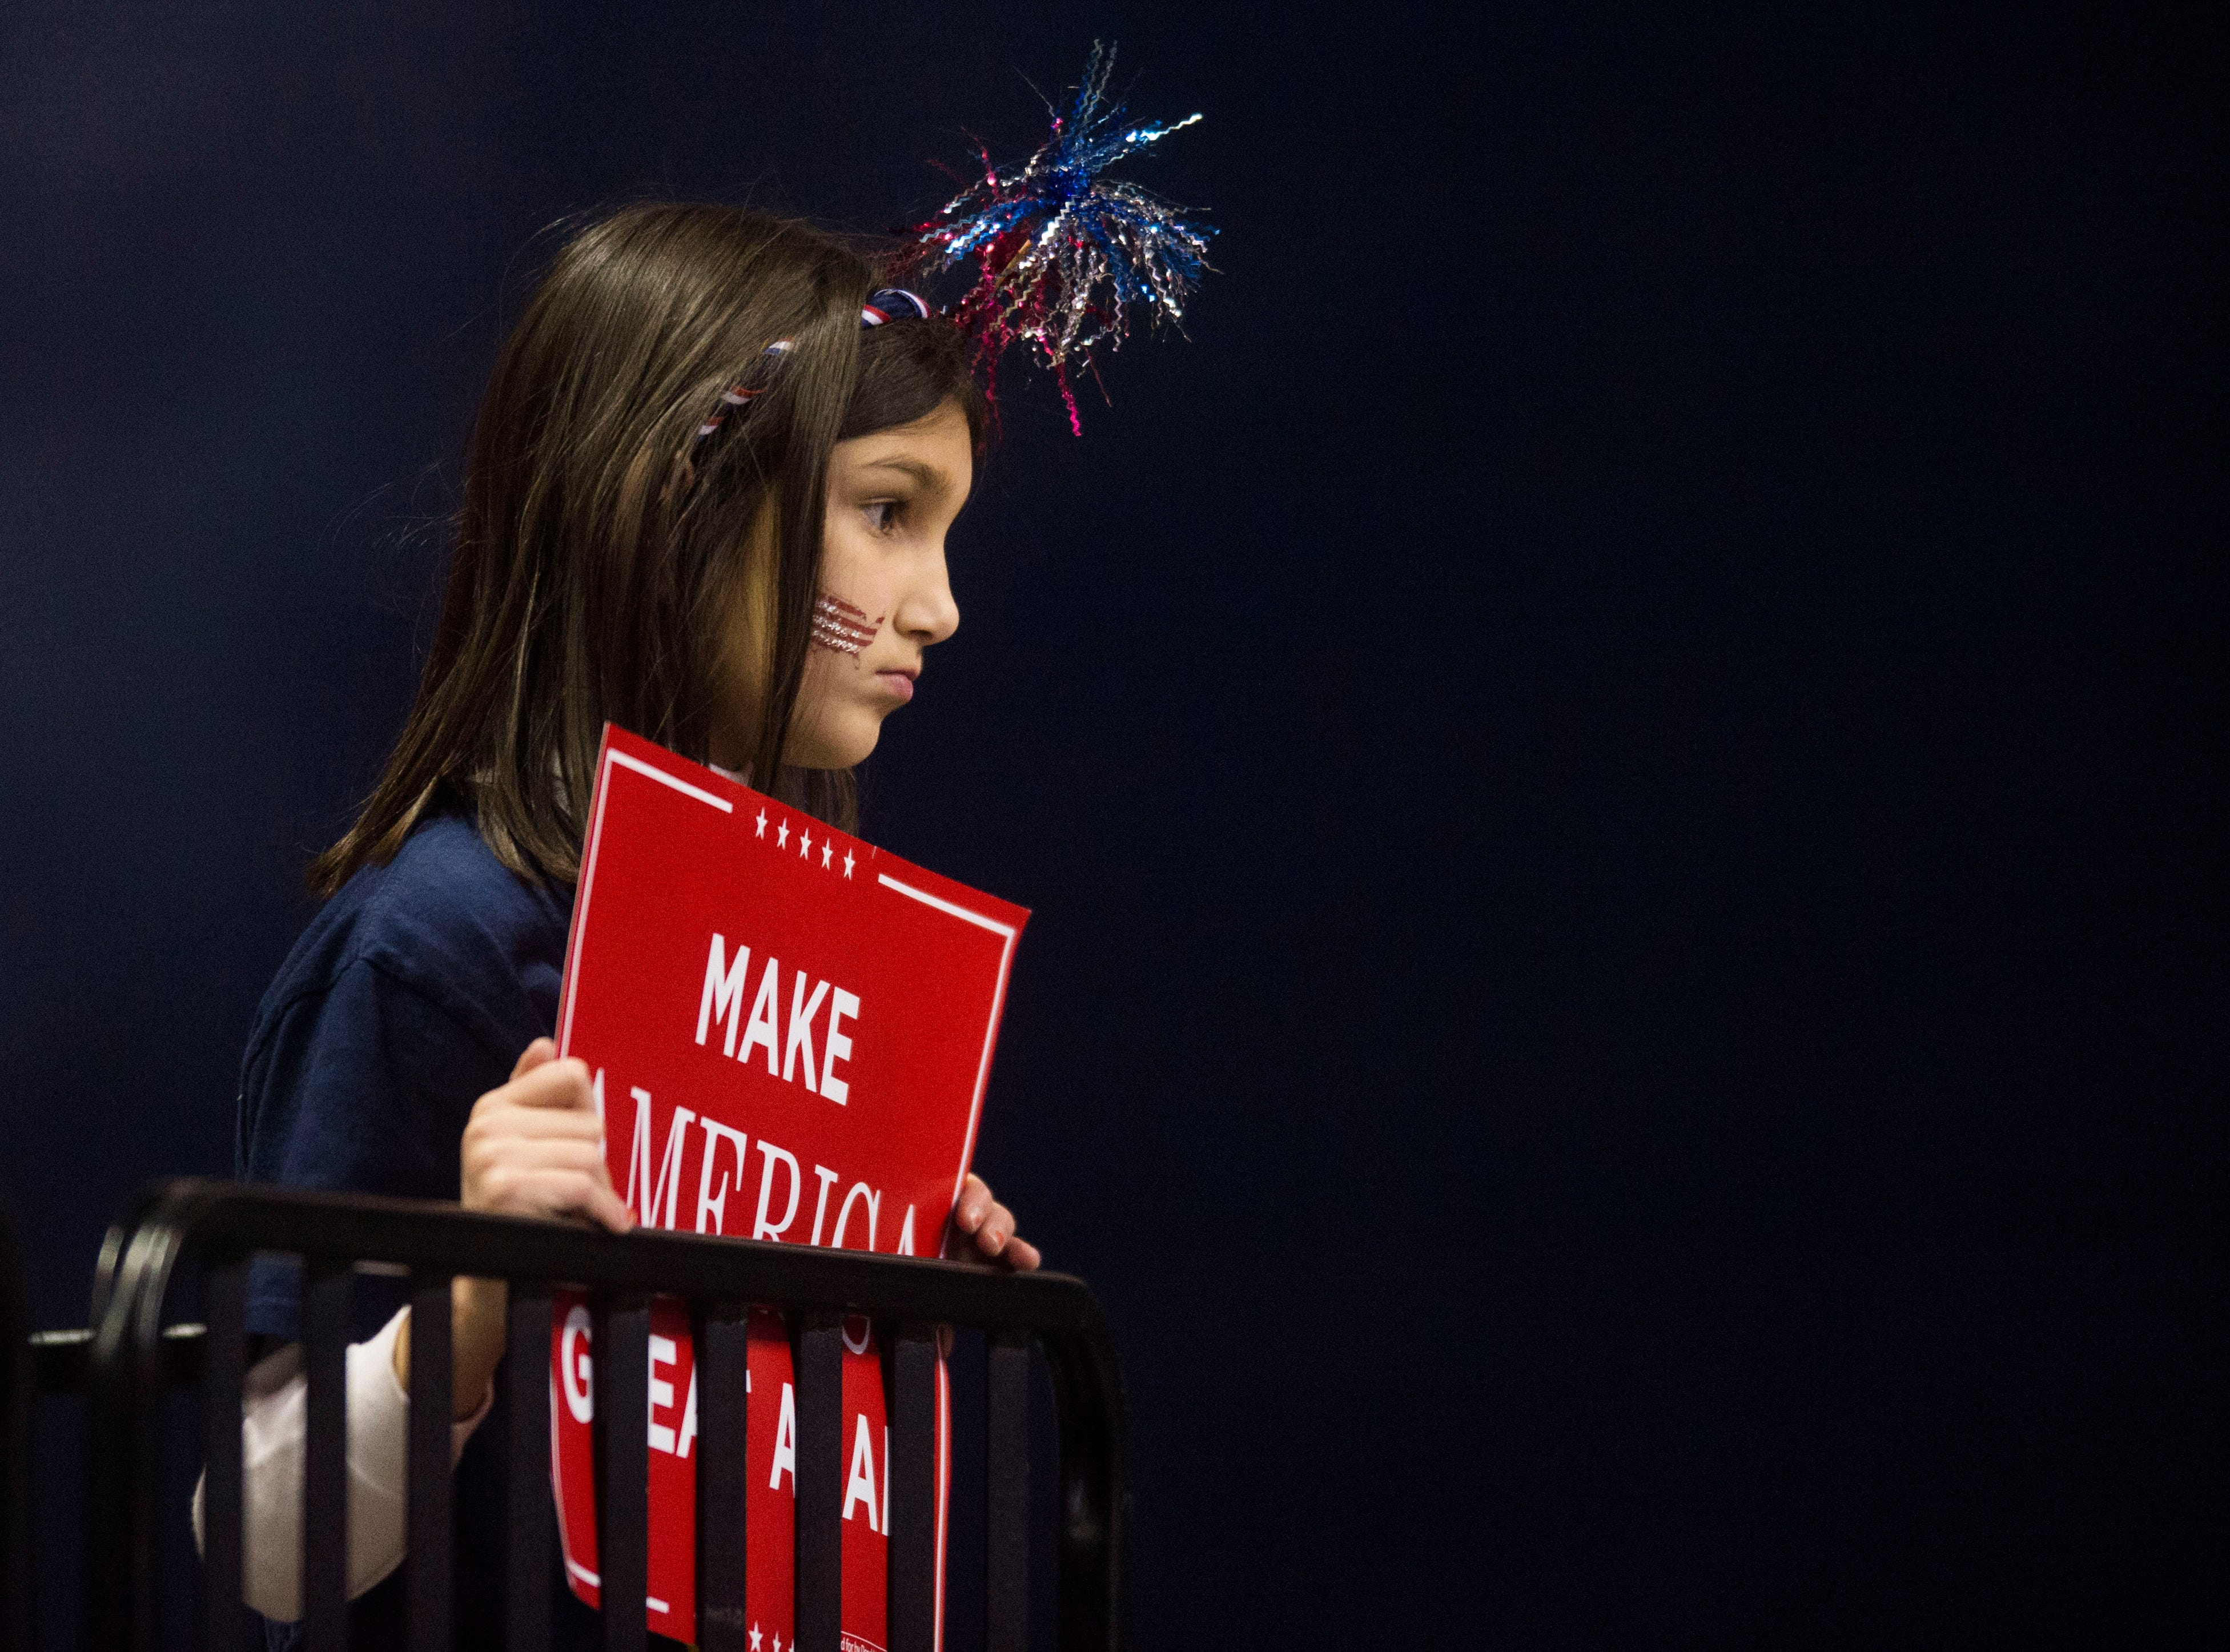 A young Trump supporter watches during a Donald Trump rally in support of U.S. Rep. Marsha Blackburn for the U.S. Senate at McKenzie Arena in Chattanooga, Sunday, Nov. 4, 2018.